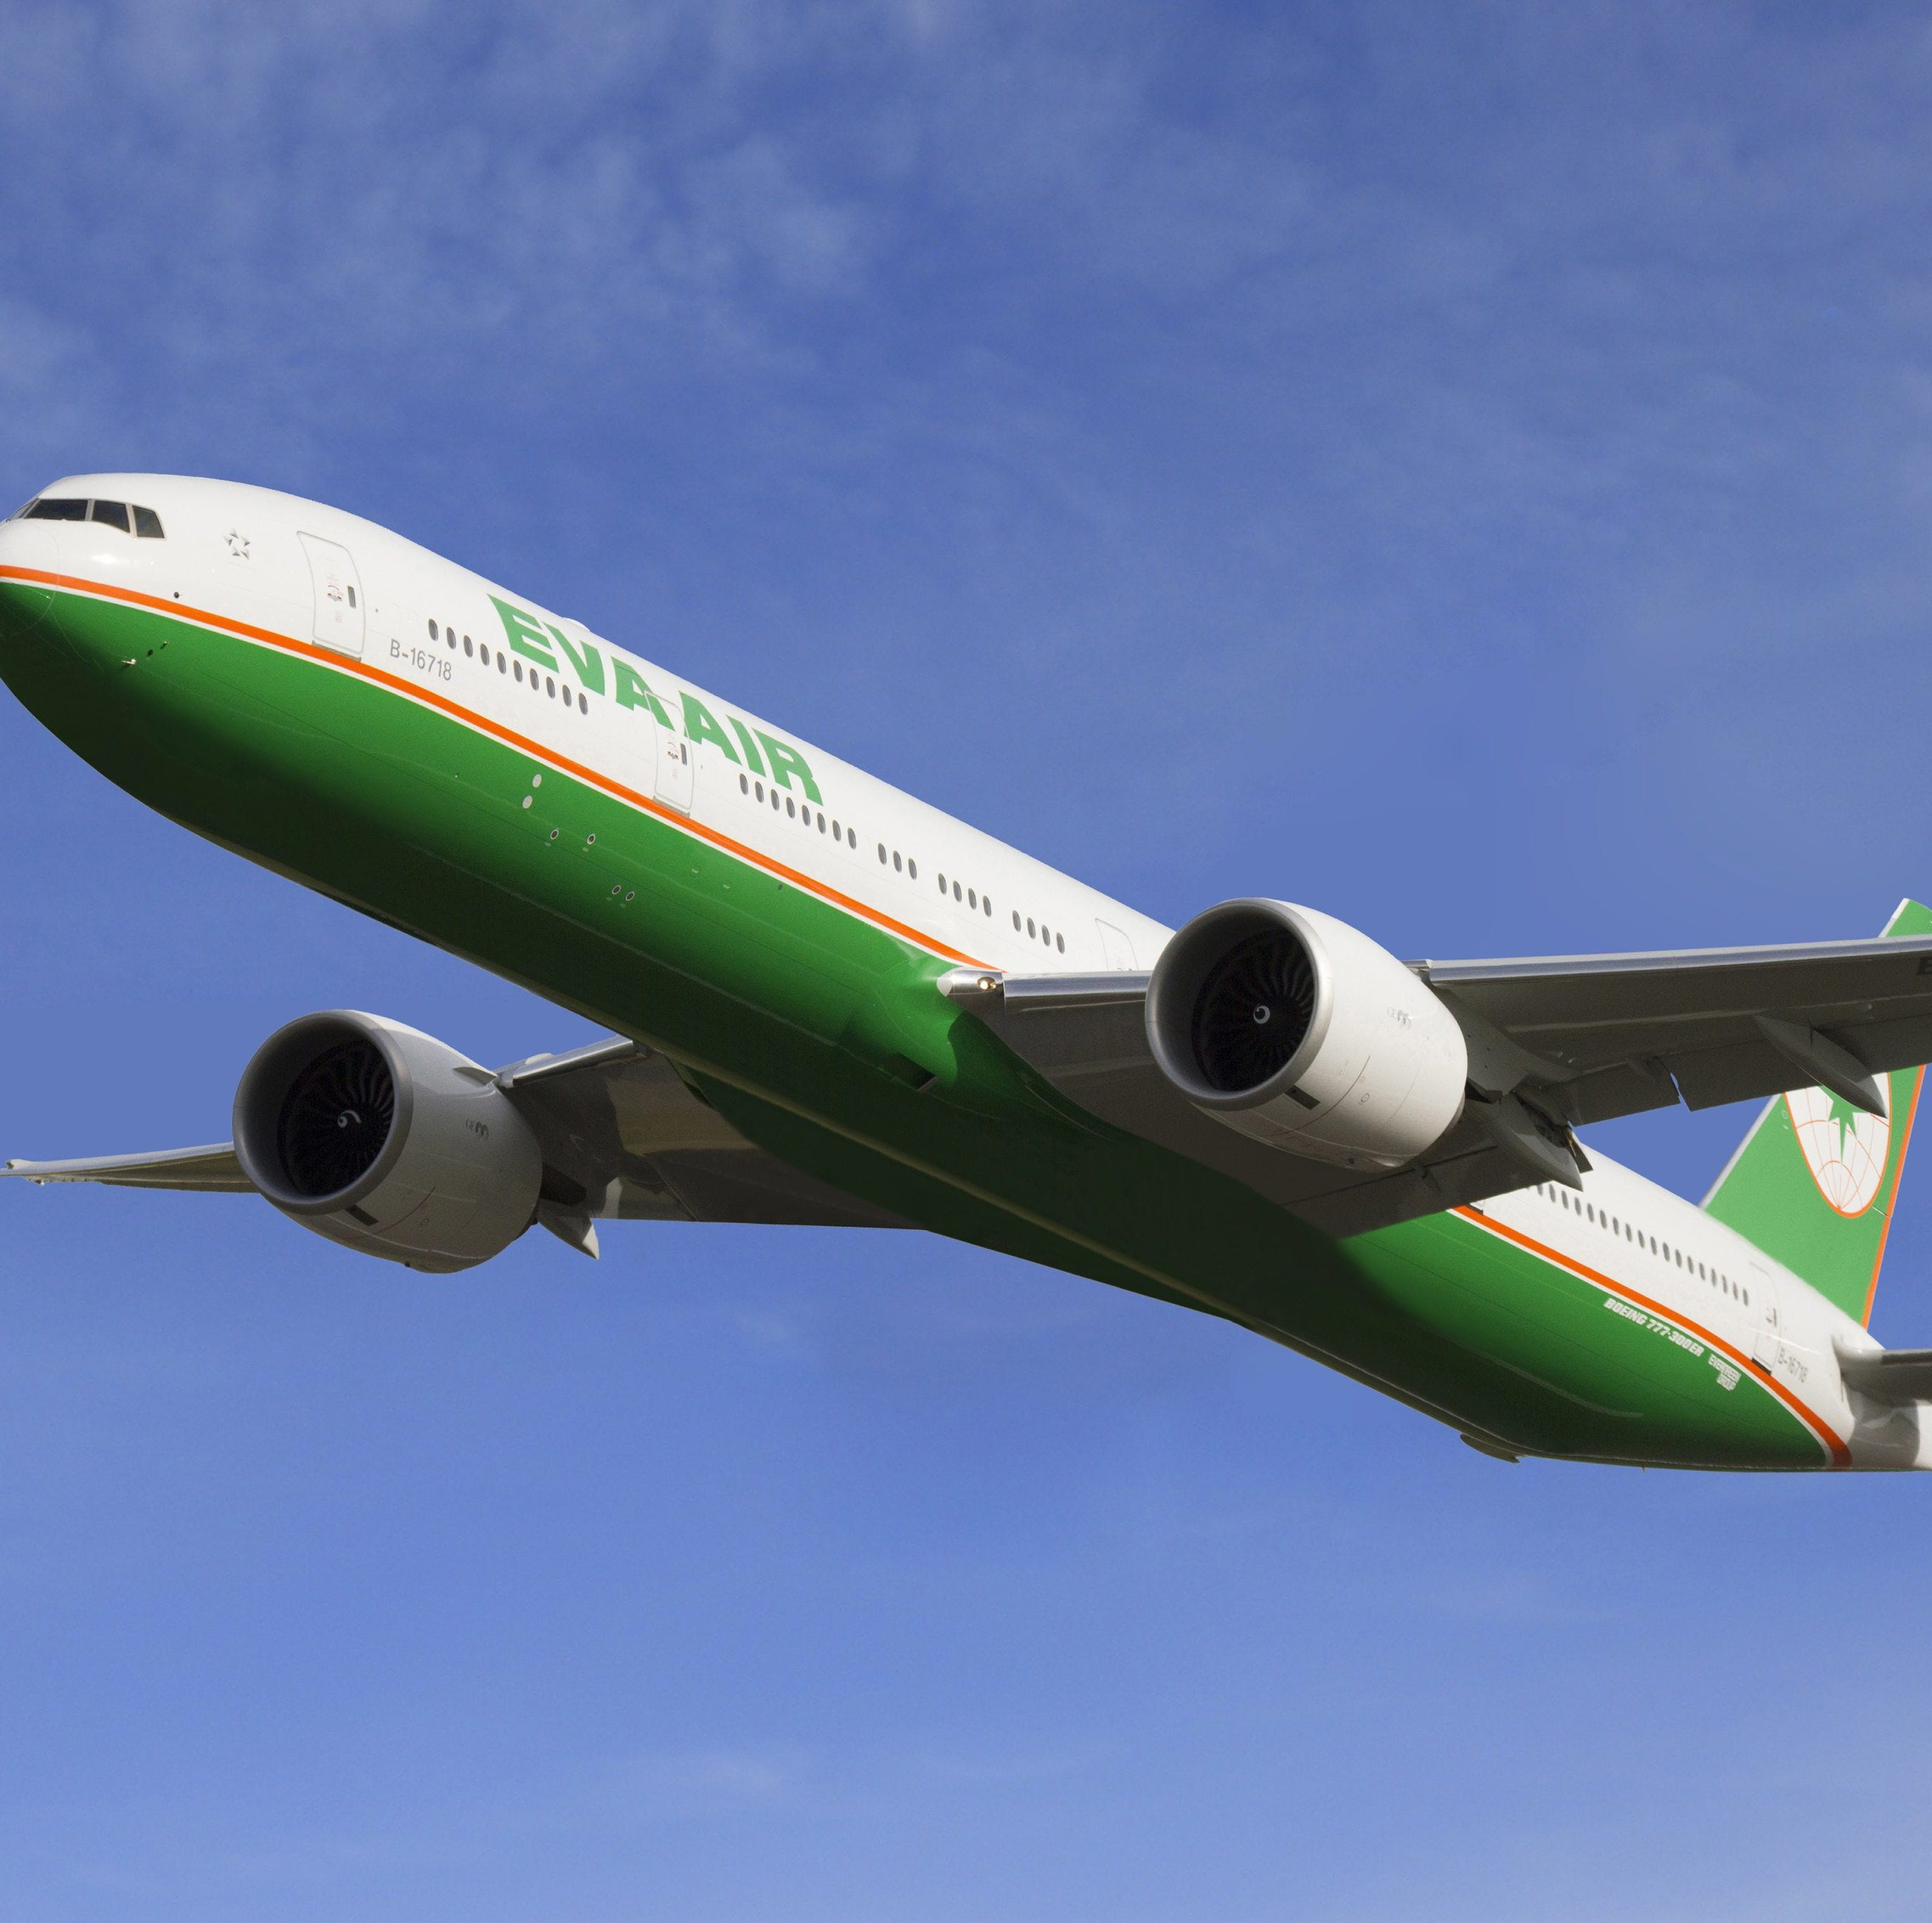 epa05032065 A handout photograph made available by EVA AIR dated 10 April  2014 shows an EVA Air Boeing 777-300ER passenger jet flying in the air. On 19 November 2015, EVA Air announced that it will sign a contract to order 26 Boeing jets - 24 B787 and two Boing  777-300/ER - on 24 November in Taipei, Taiwan. The deal is valuied at more than 8 billion US dollars at current list prices. EVA Air, with 64 aircrafts, is Taiwan's second-largest airline after the China Airlines (CAL). EVA Air wants to modernize its long-haul fleet to expand into new markets, particularly in Southeast Asia, Oceania and North America.  EPA/EVA AIR HANDOUT  HANDOUT EDITORIAL USE ONLY/NO SALES